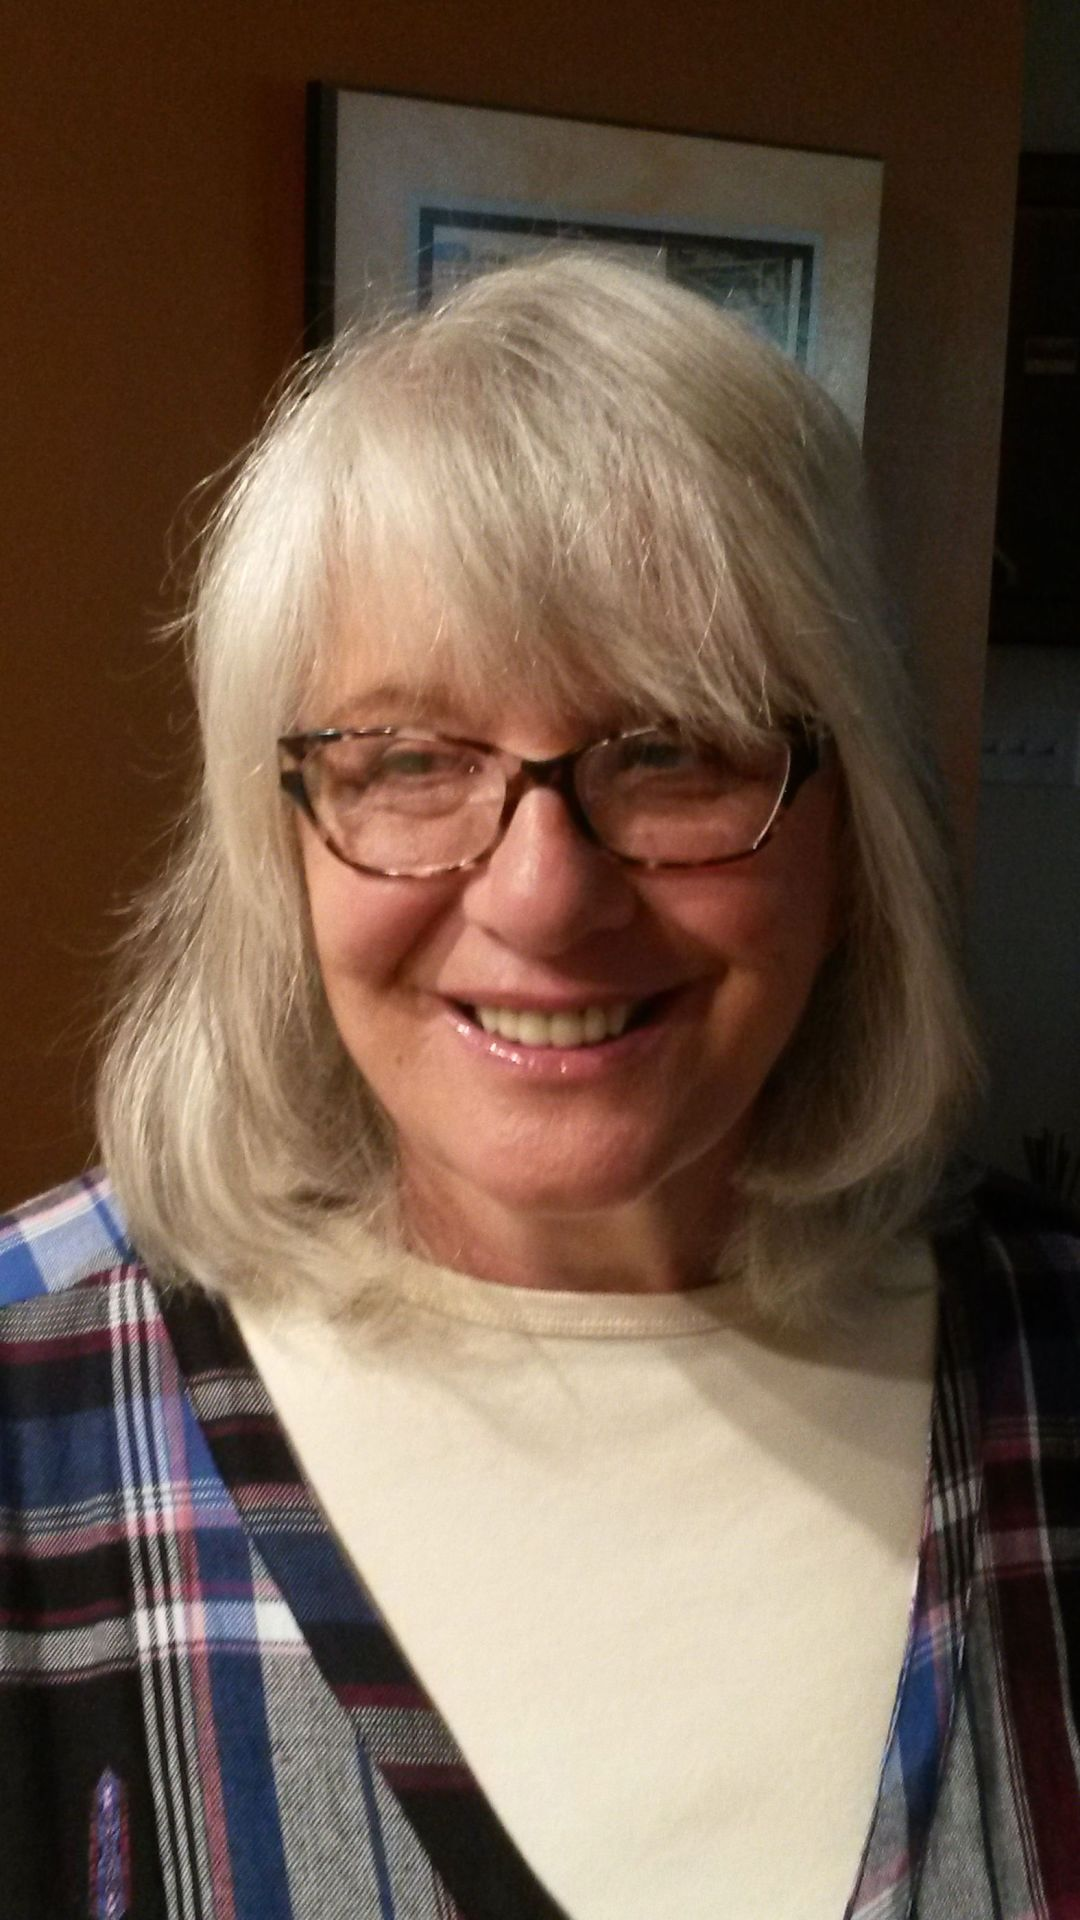 Wisdom of ages: 70 as satisfying for me as my grandmother